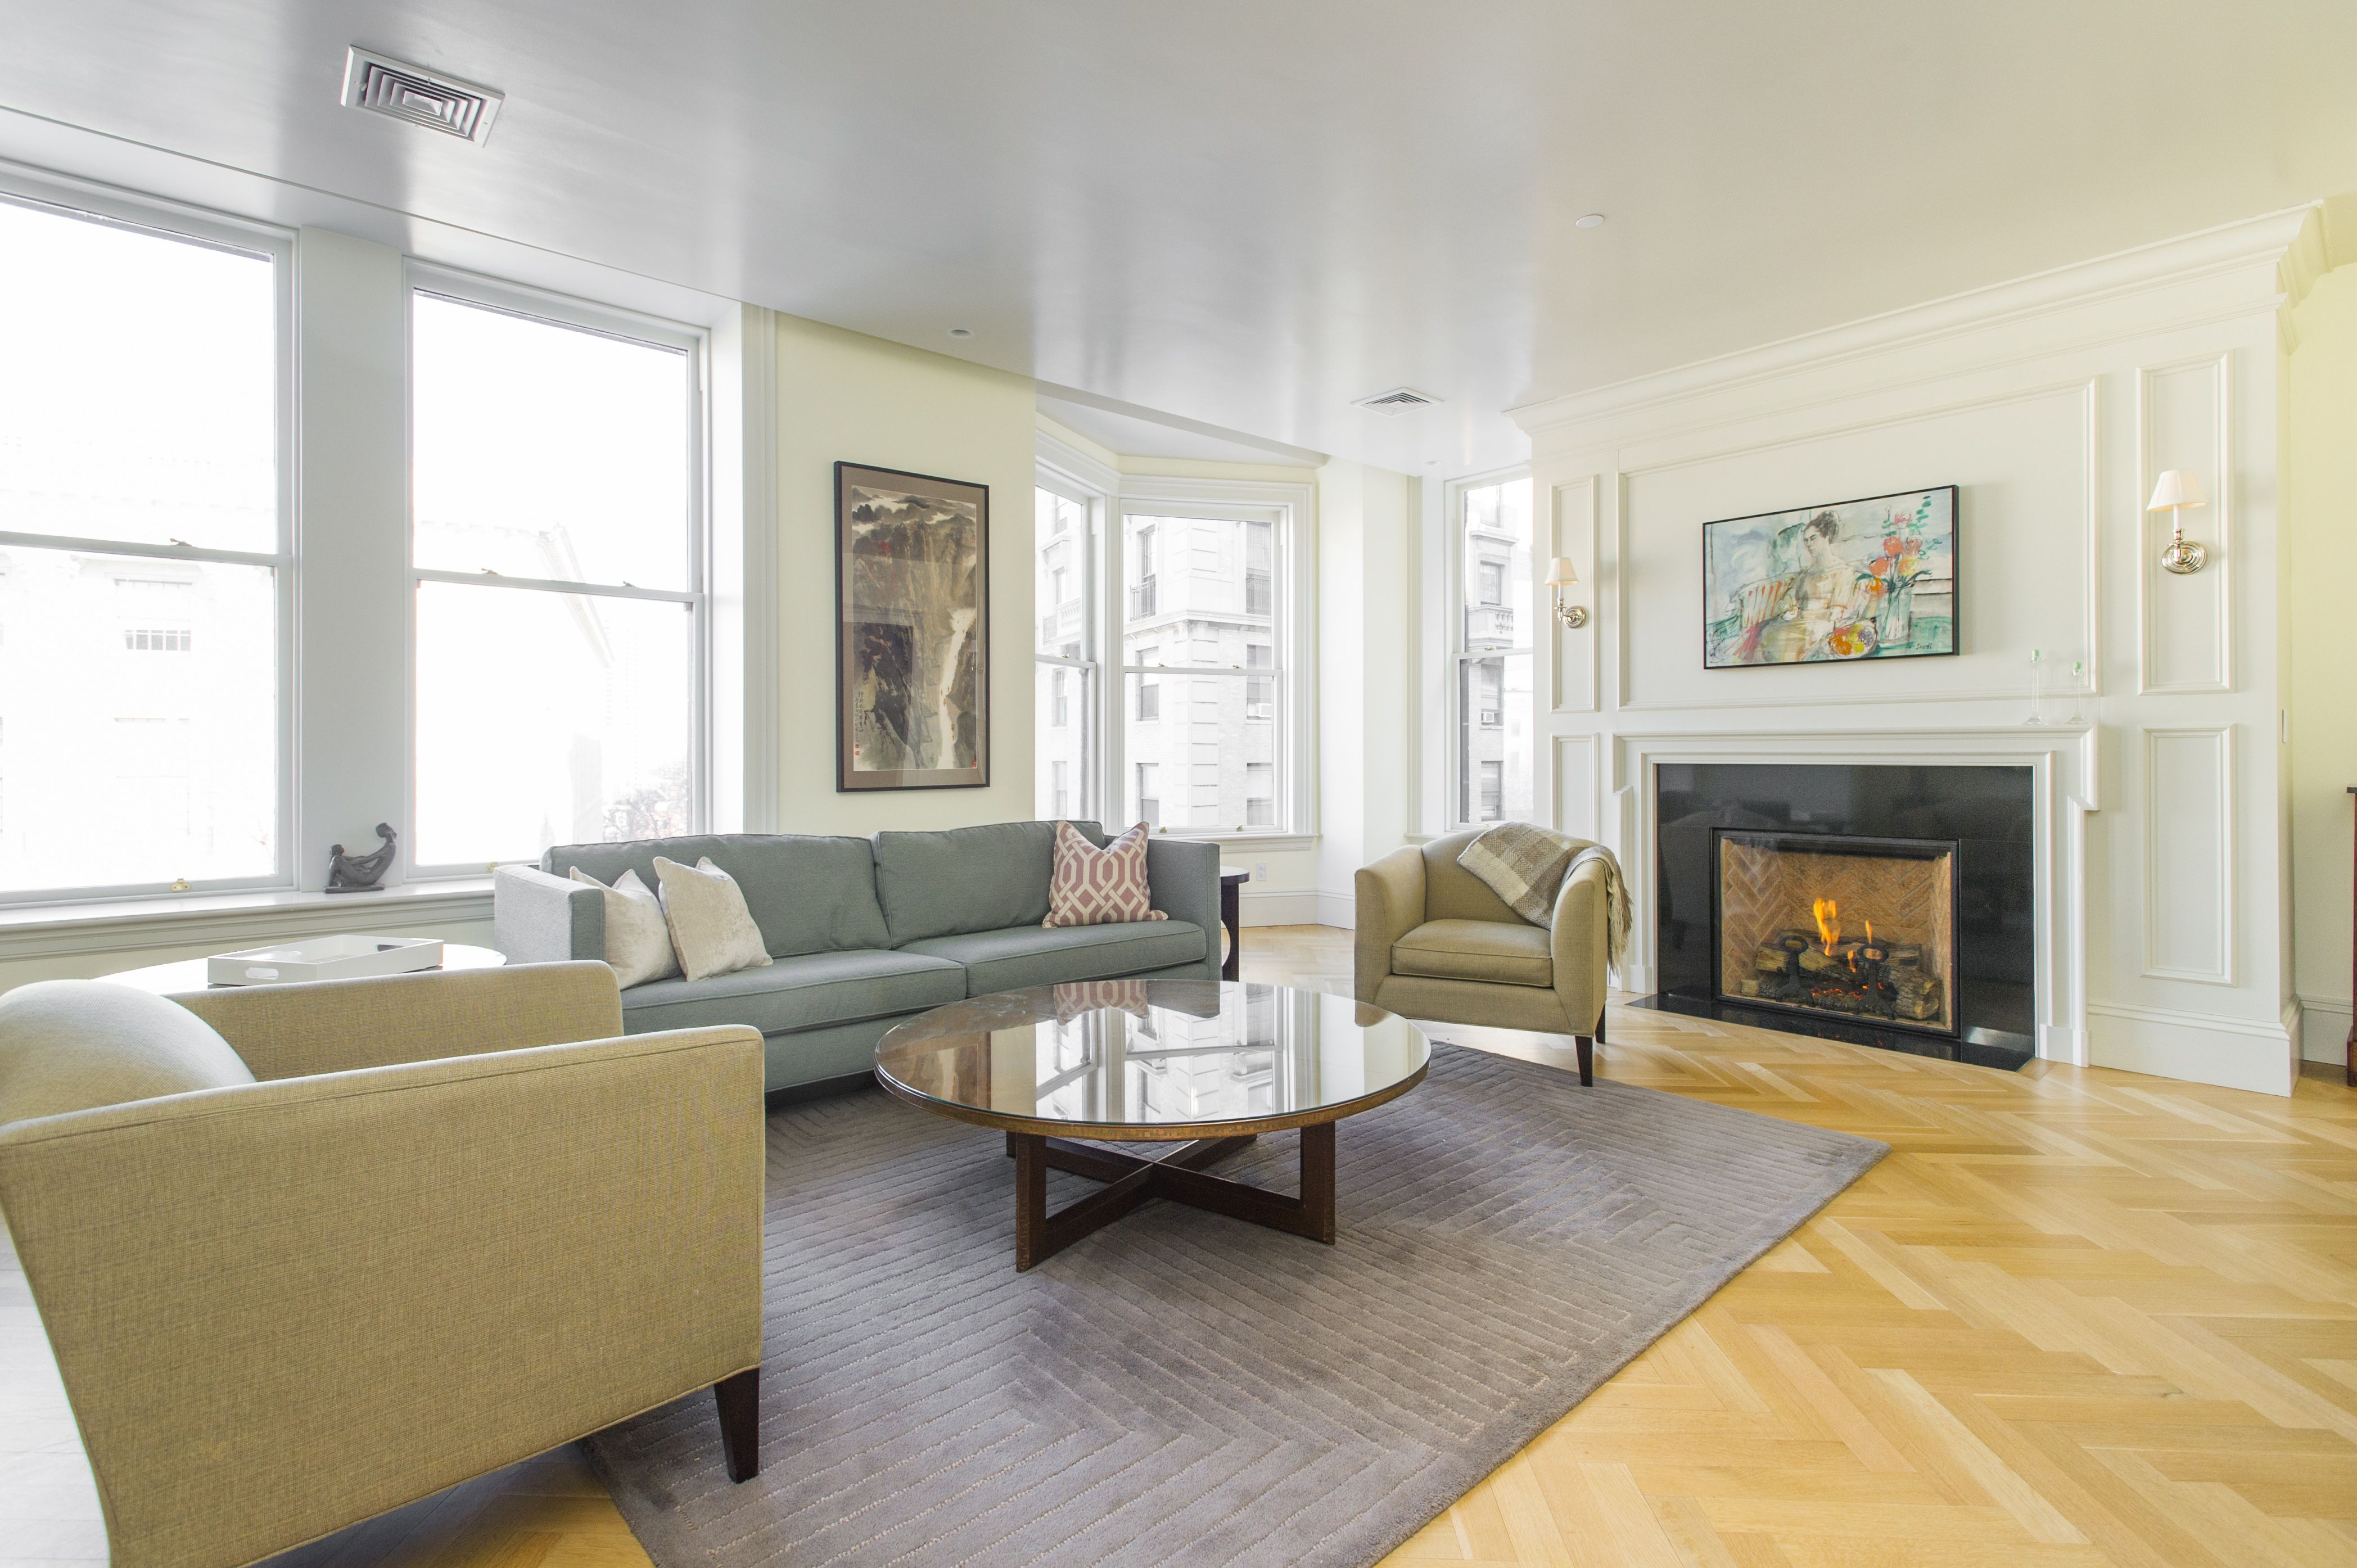 today would be a day to sit by that #fireplace #backbay #hardwoodfloors